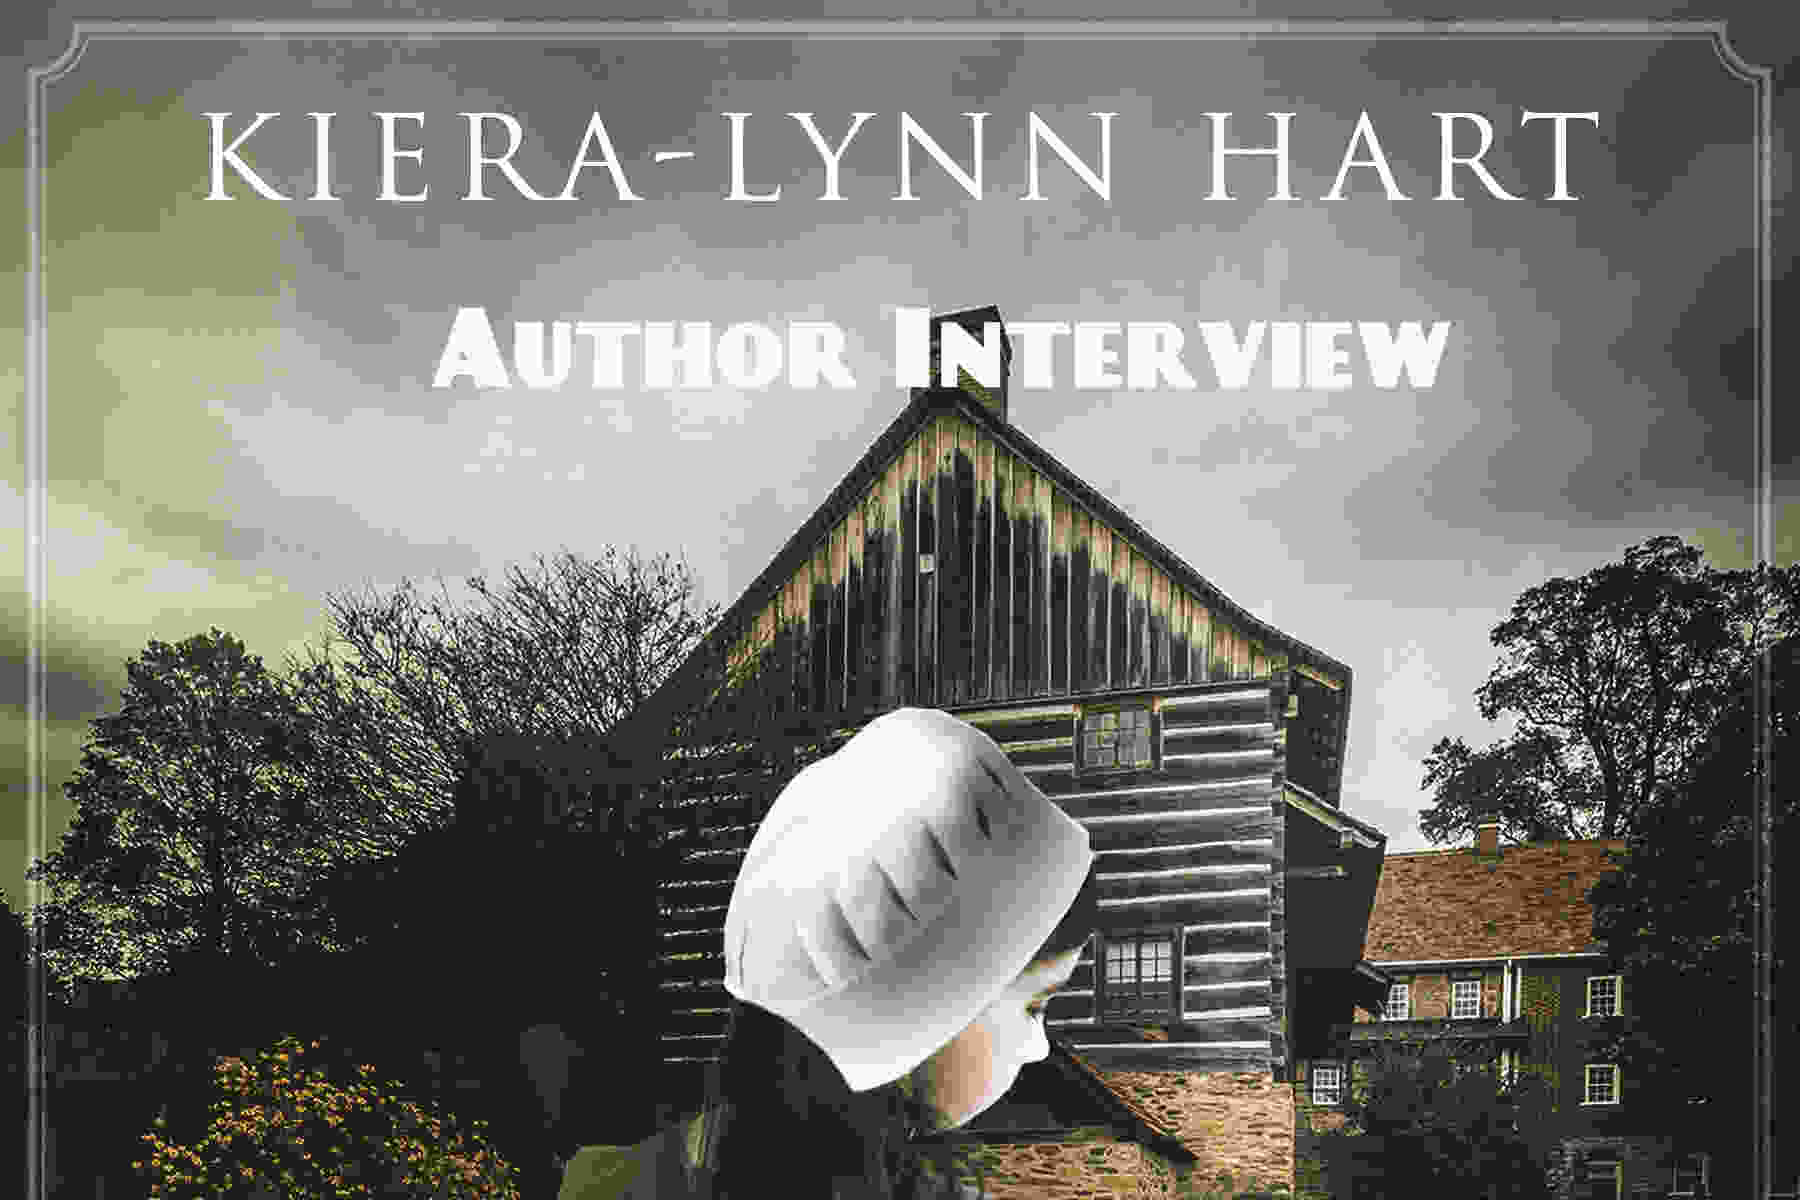 keira-lynn-hart-author